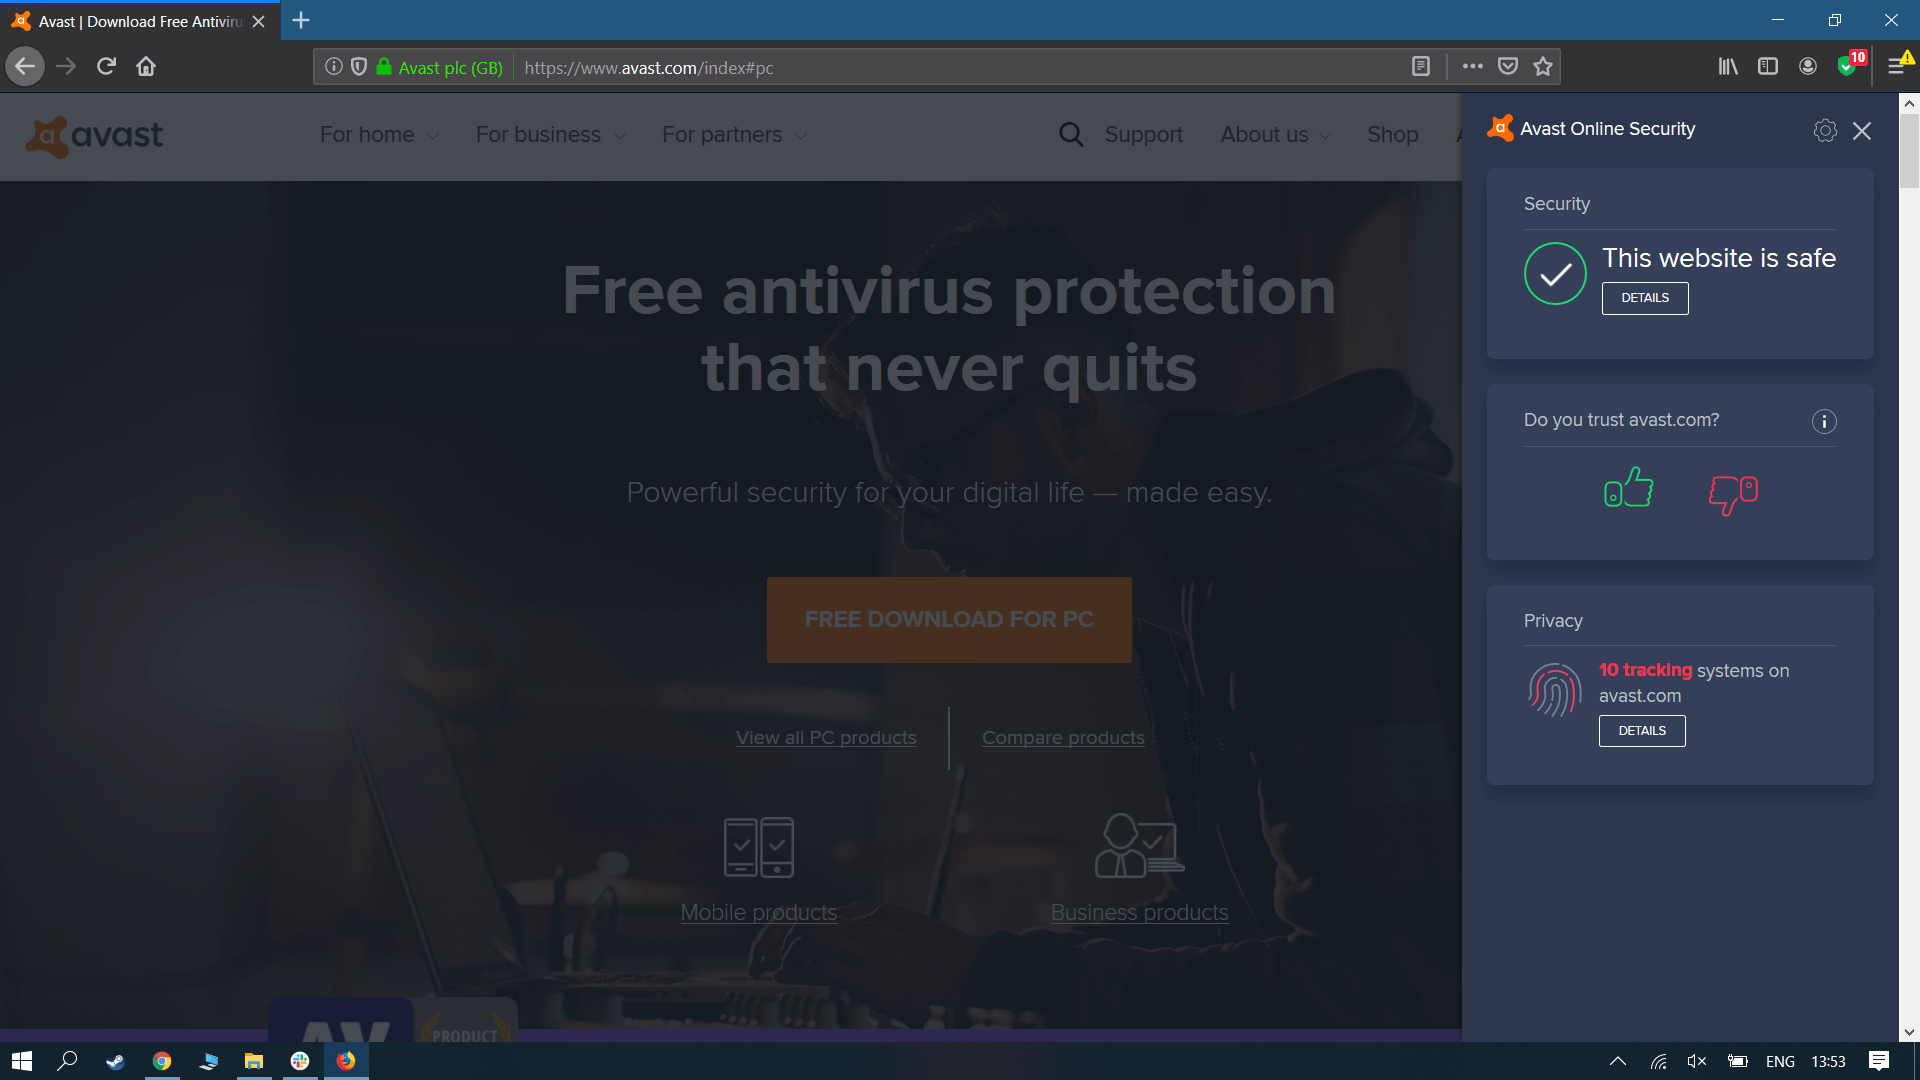 Avast's free antivirus solution tracks users online to mine data for companies like Microsoft, Pepsi, and Google